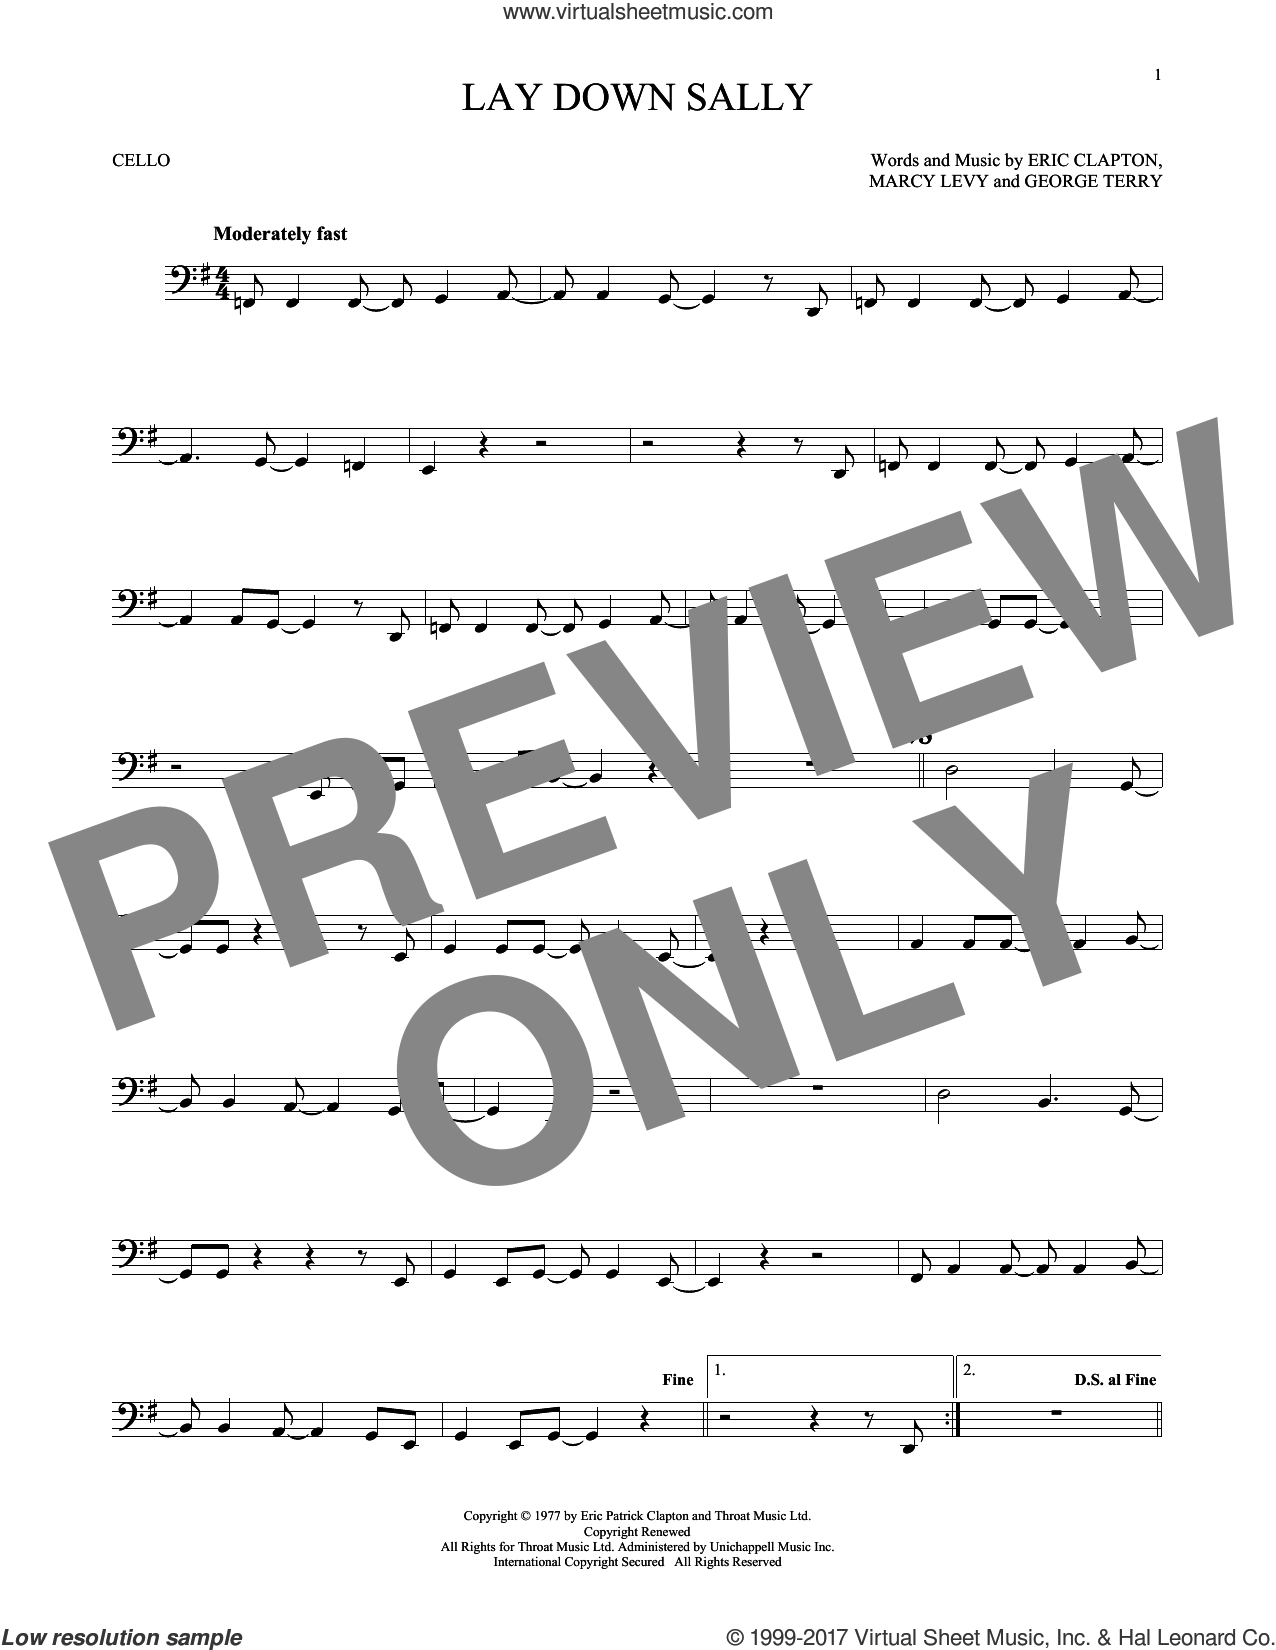 Lay Down Sally sheet music for cello solo by Eric Clapton, George Terry and Marcy Levy, intermediate skill level